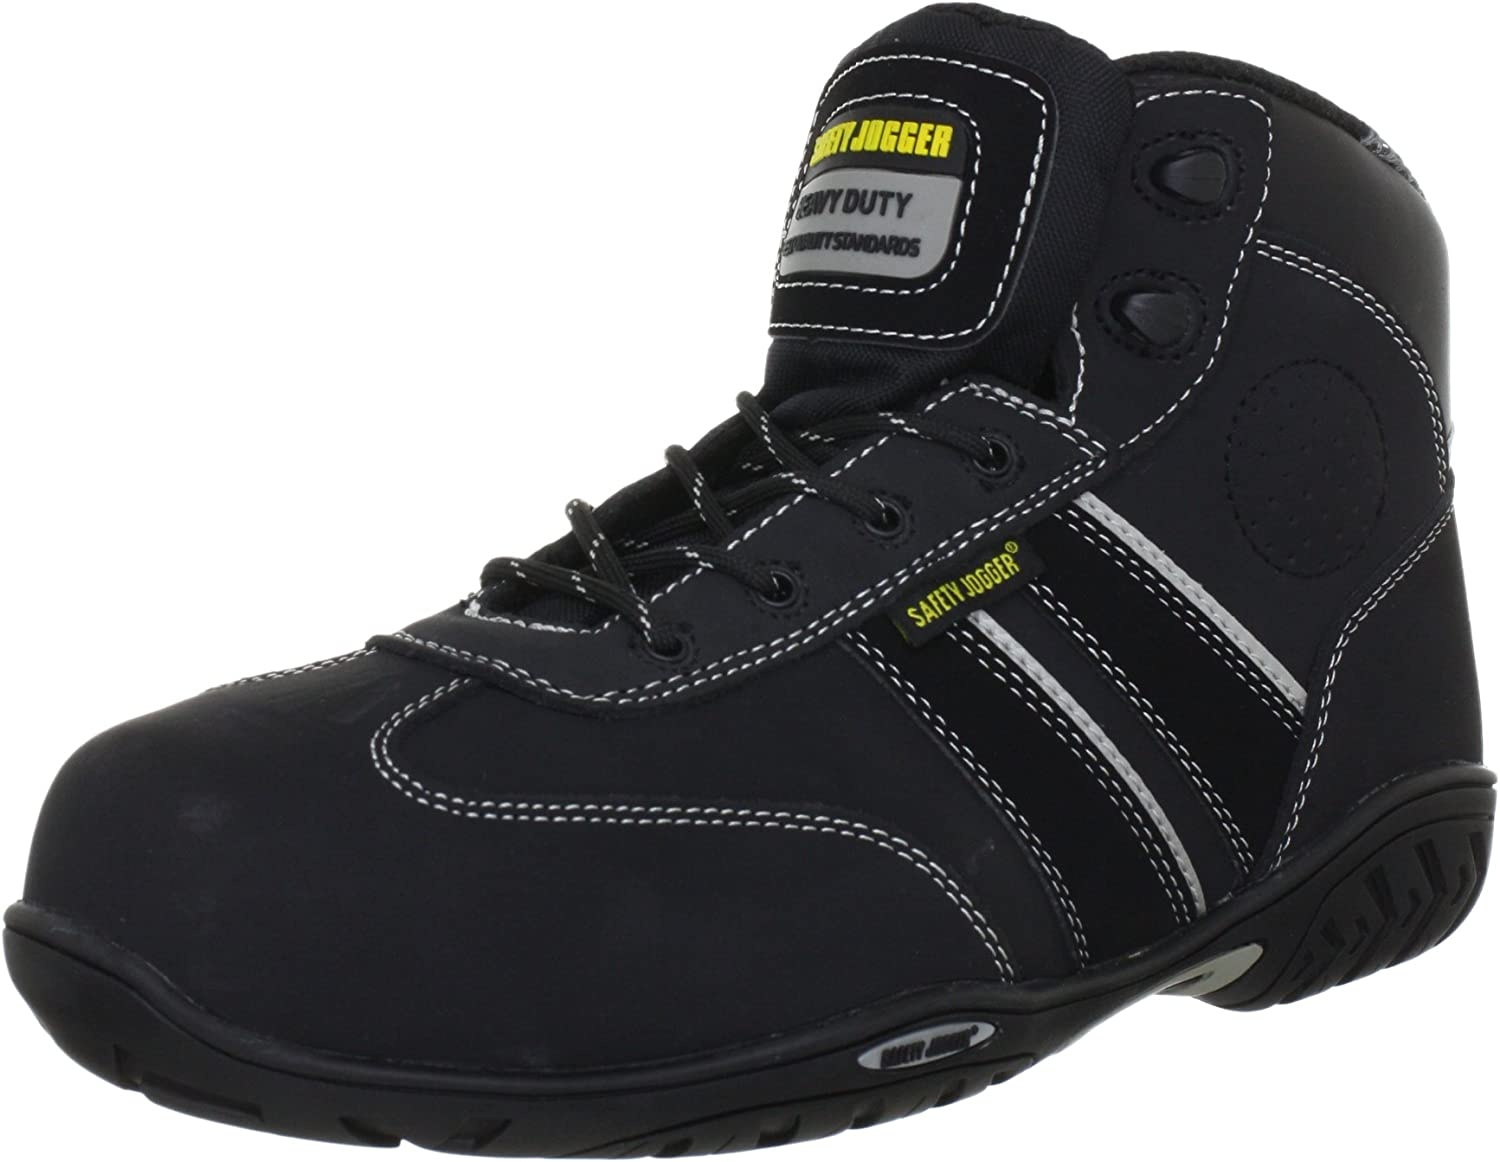 Safety Jogger Senna Unisex-Adults Safety shoes, black (black), EU 43